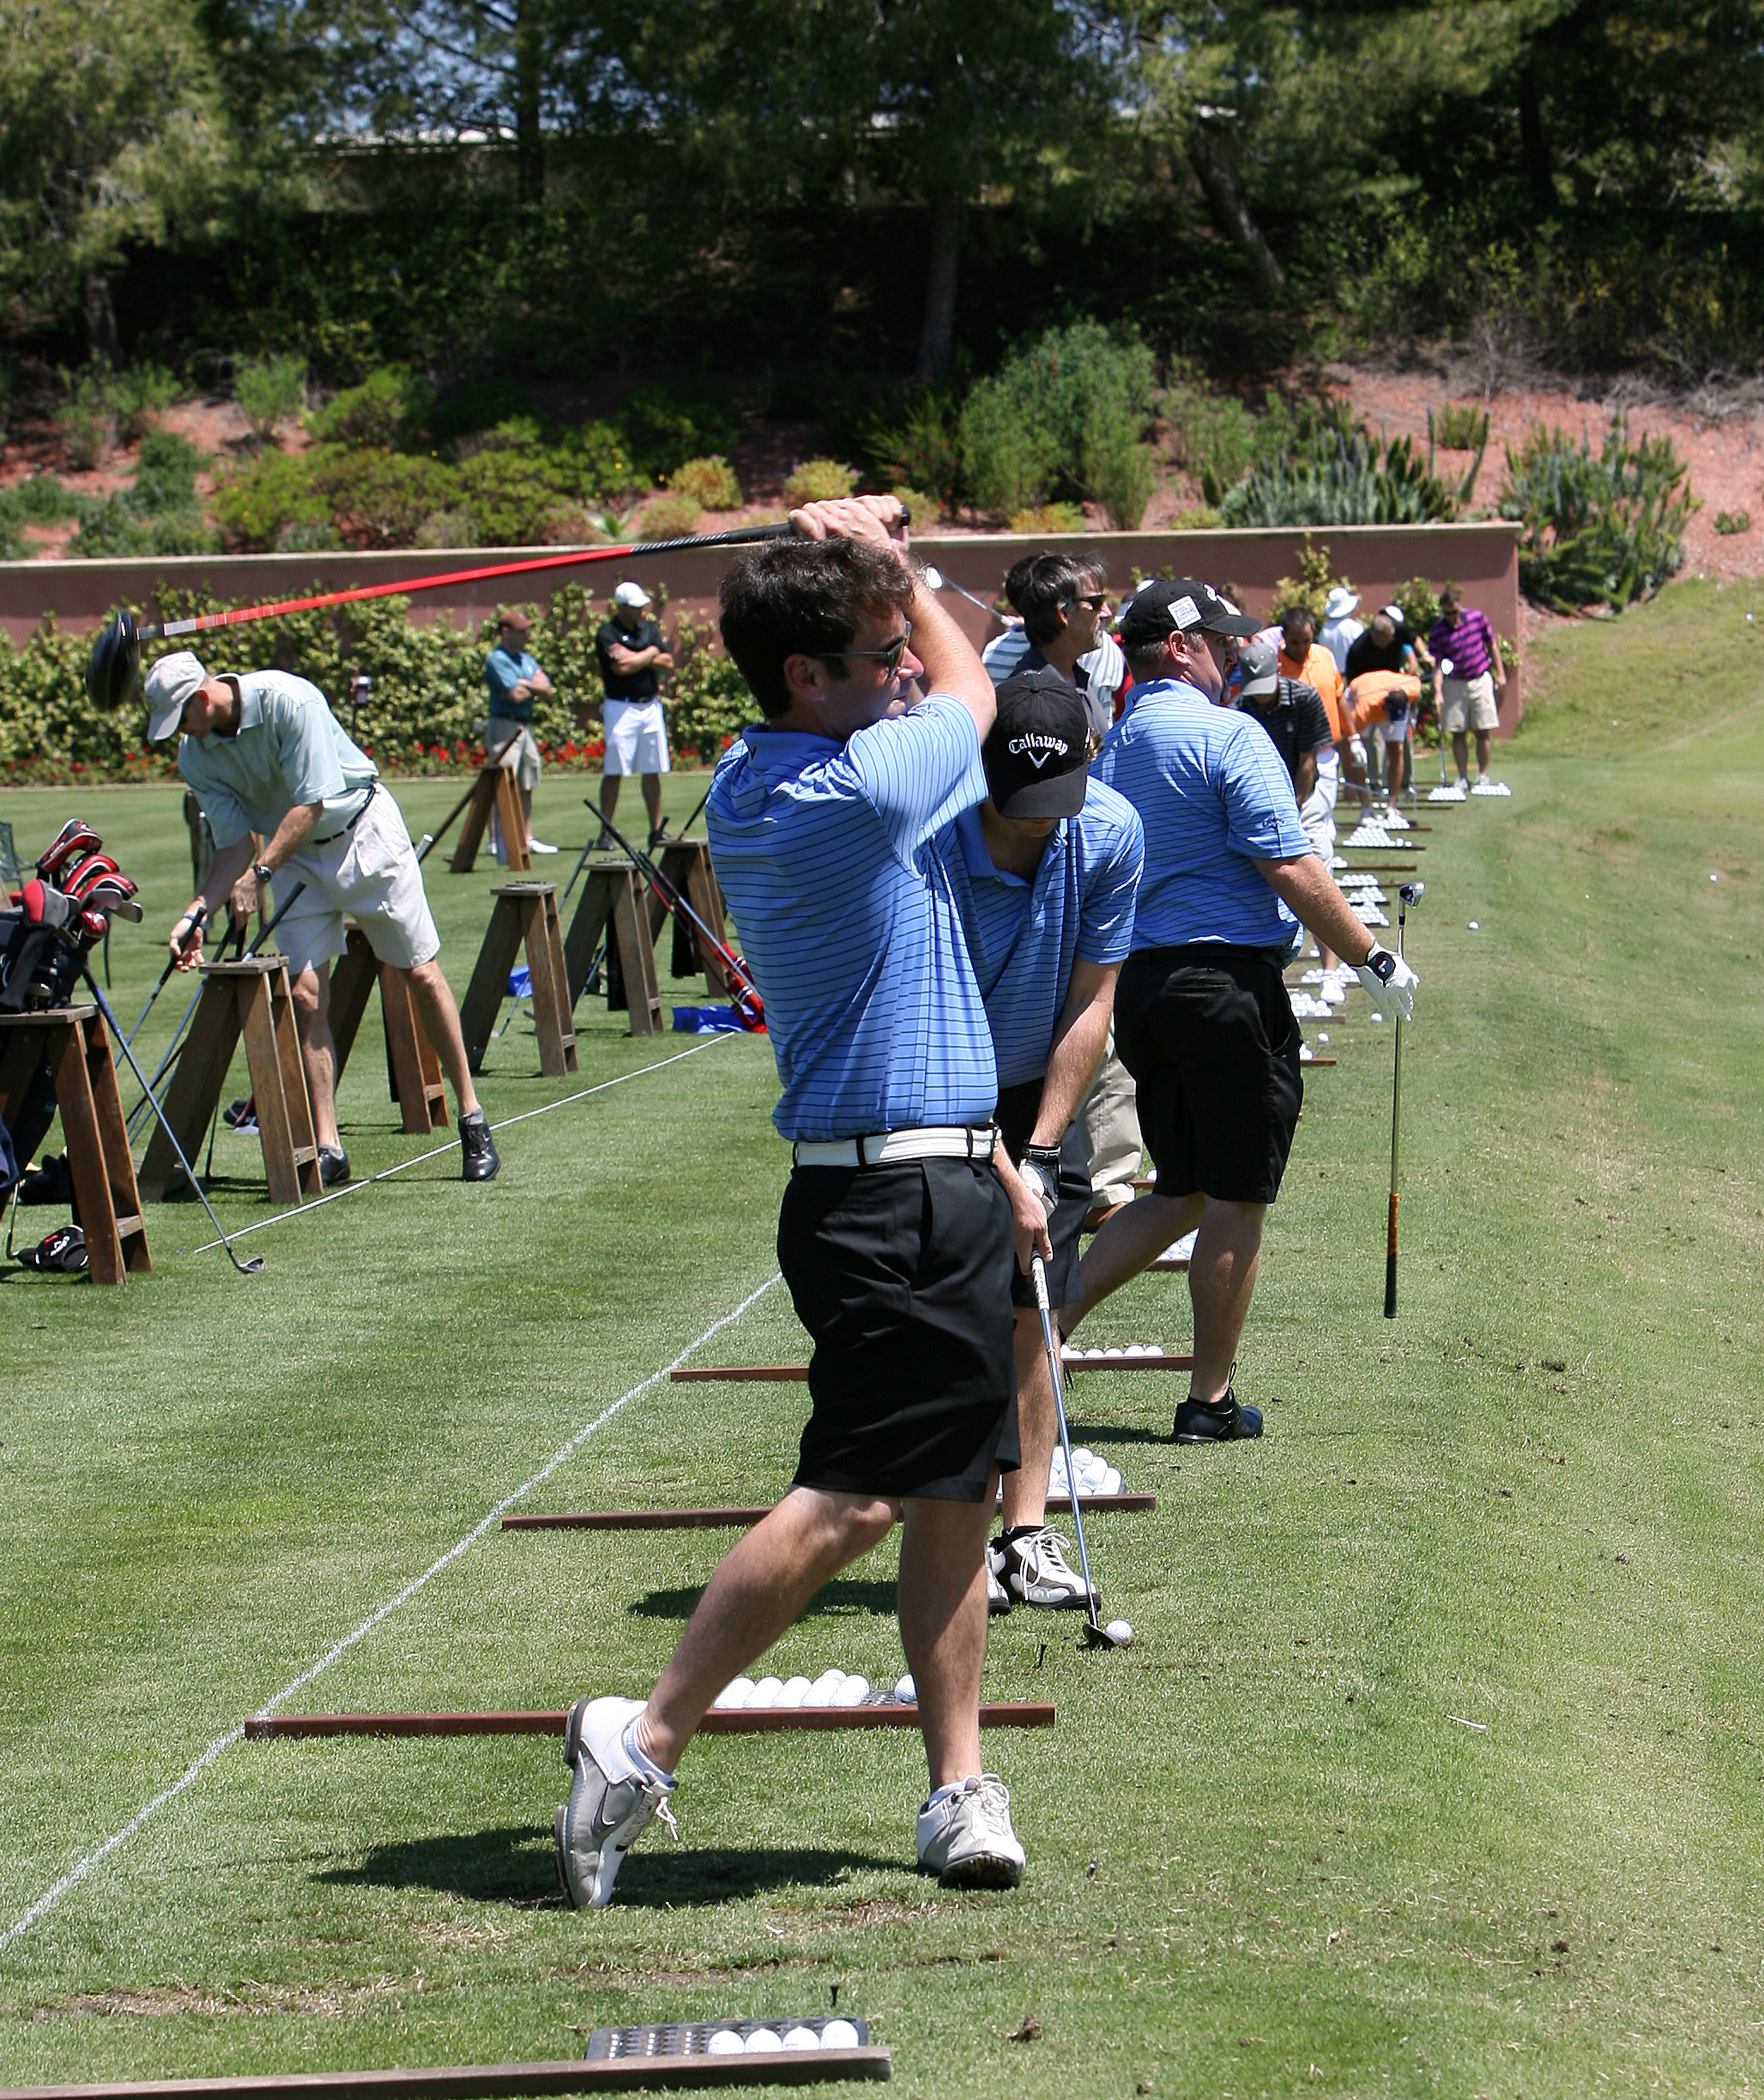 Participants practicing their swings before the tournament kicked off (San Diego, 2012)